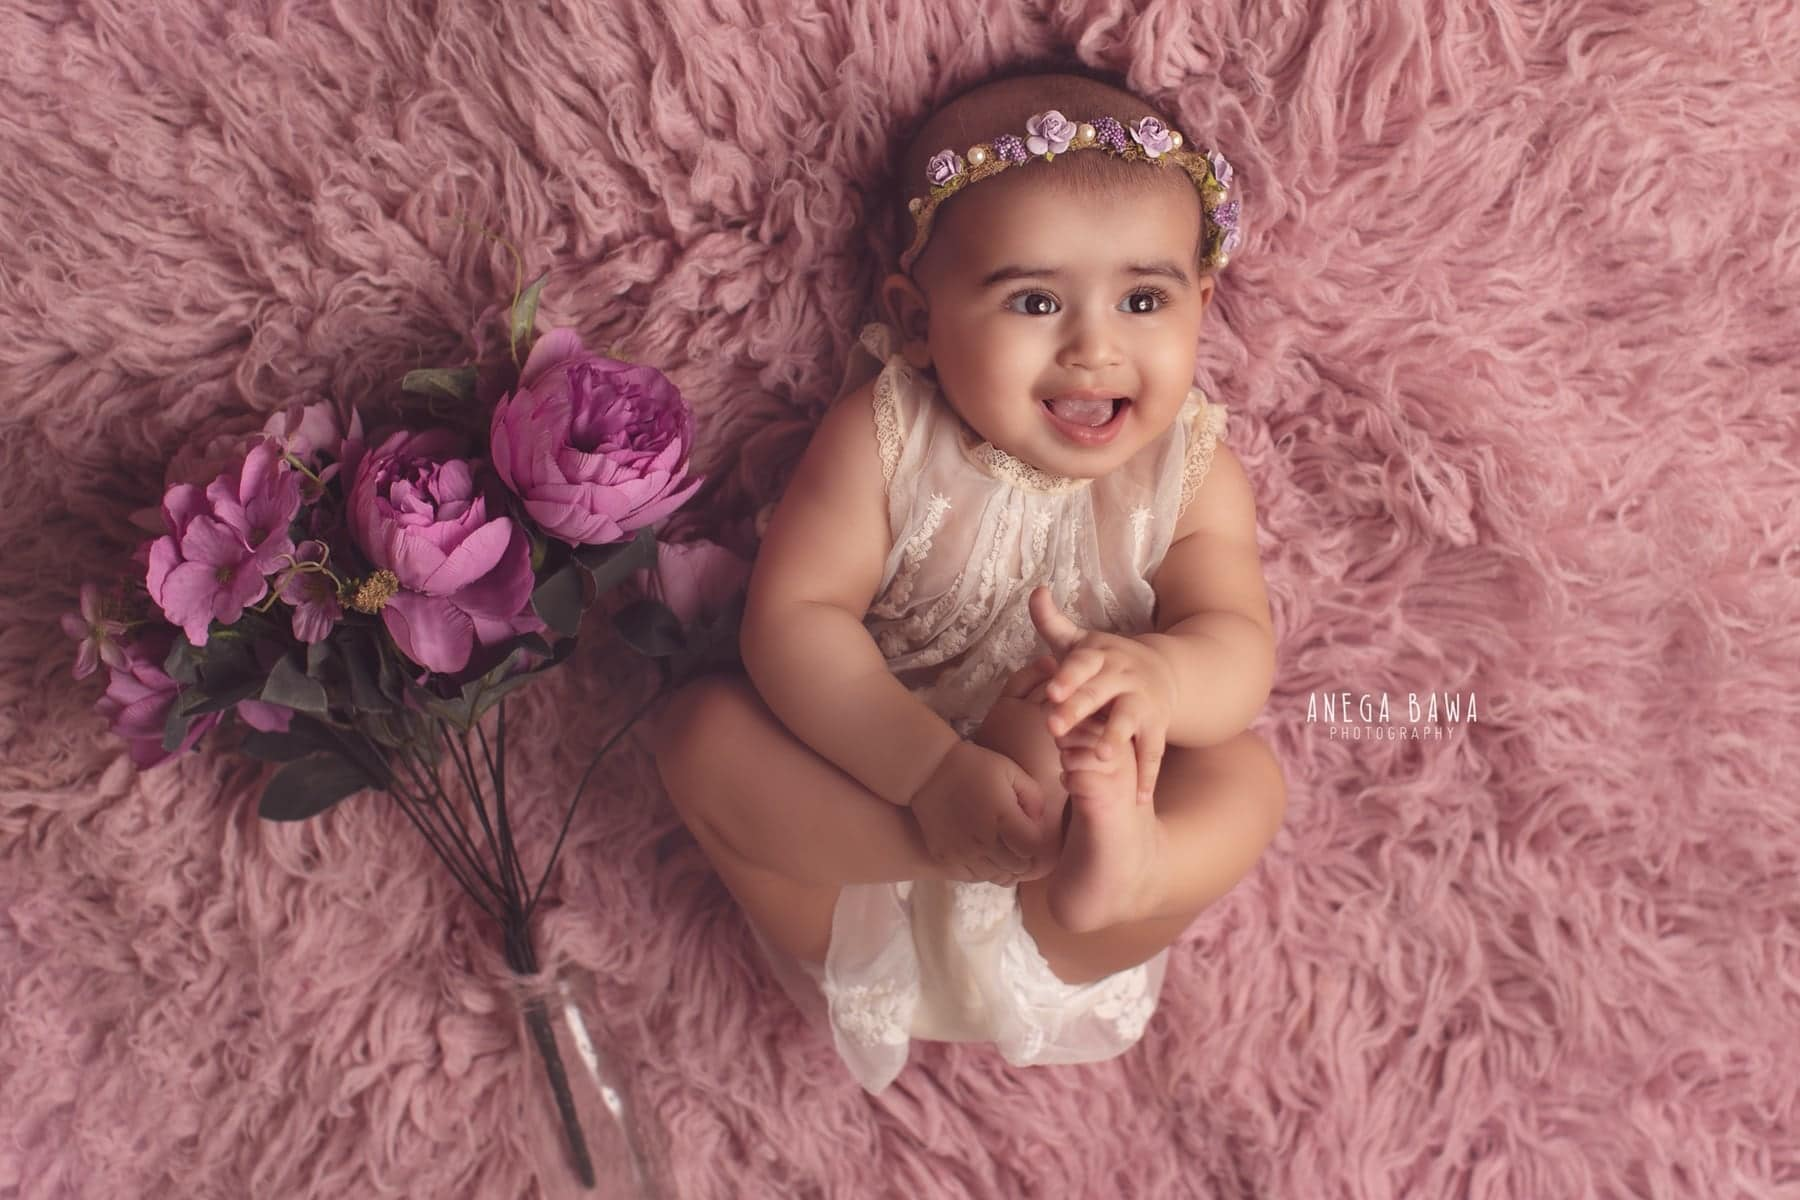 242103-purple-background-floral-baby-photography-delhi-4-5-6-months-baby-photoshoot-gurgaon-anega-bawa